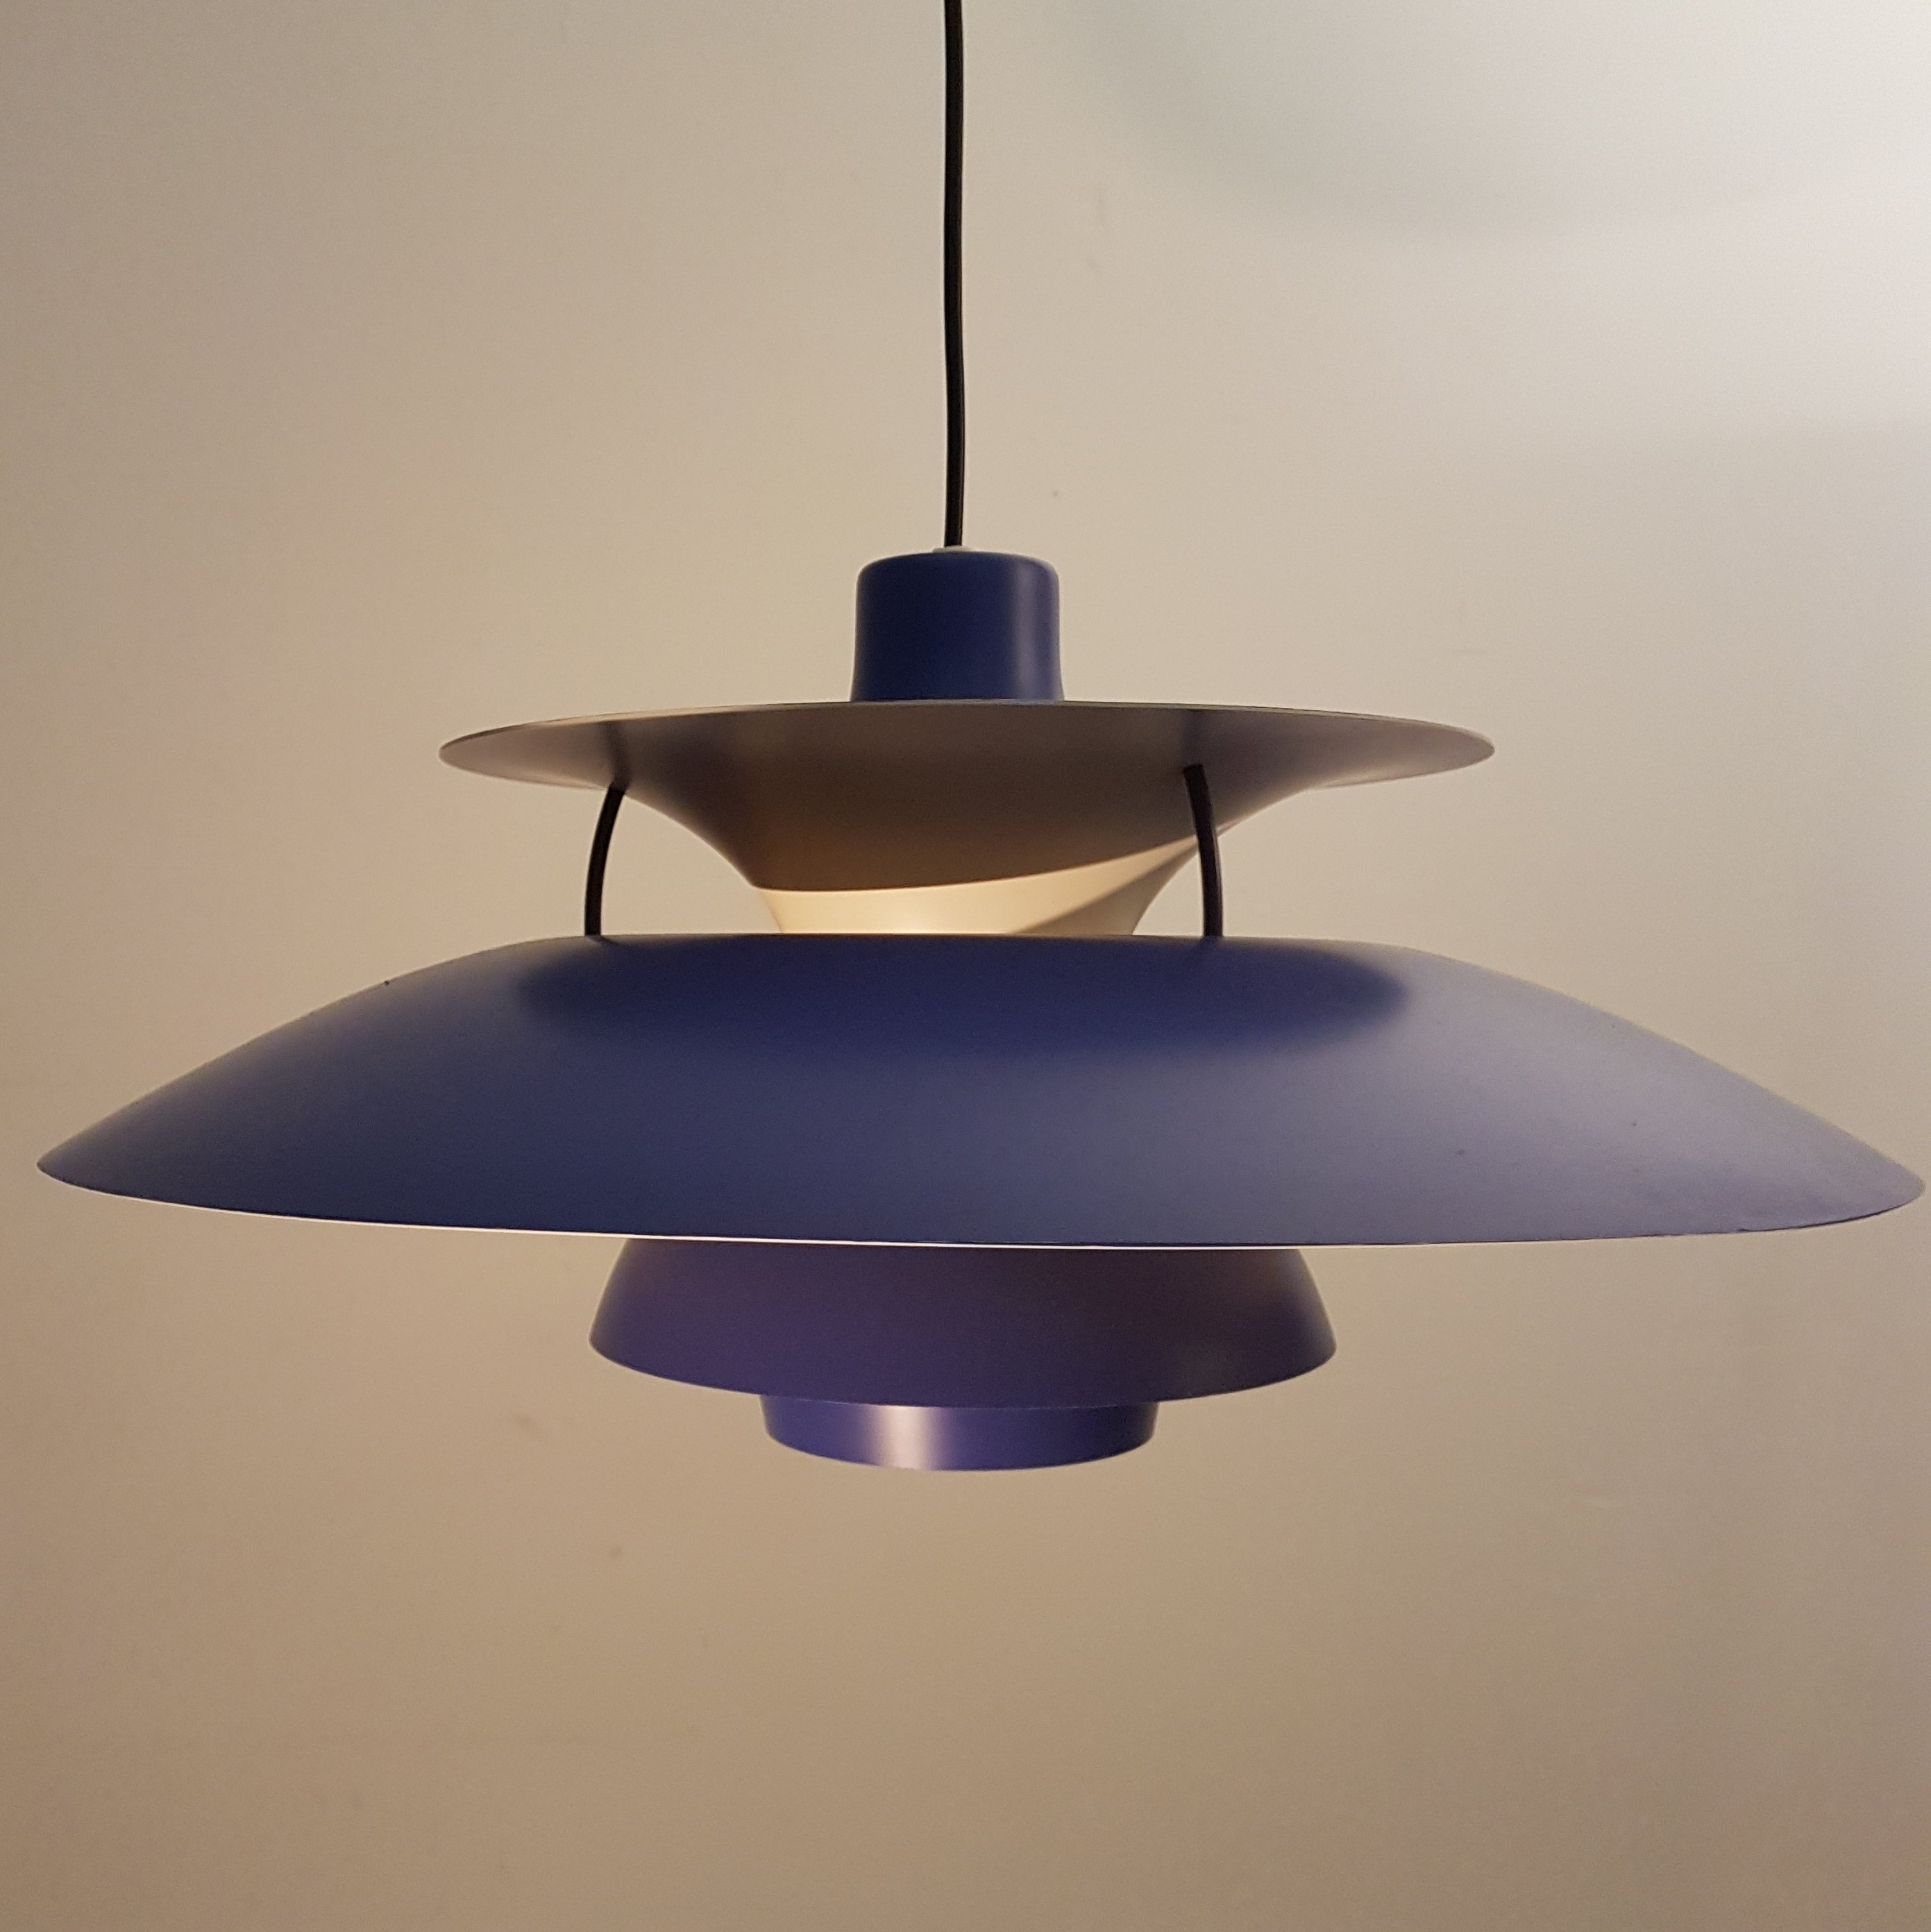 Blue ph5 pendant by poul henningsen for louis poulsen 1950s 73205 blue ph5 pendant by poul henningsen for louis poulsen 1950s aloadofball Choice Image